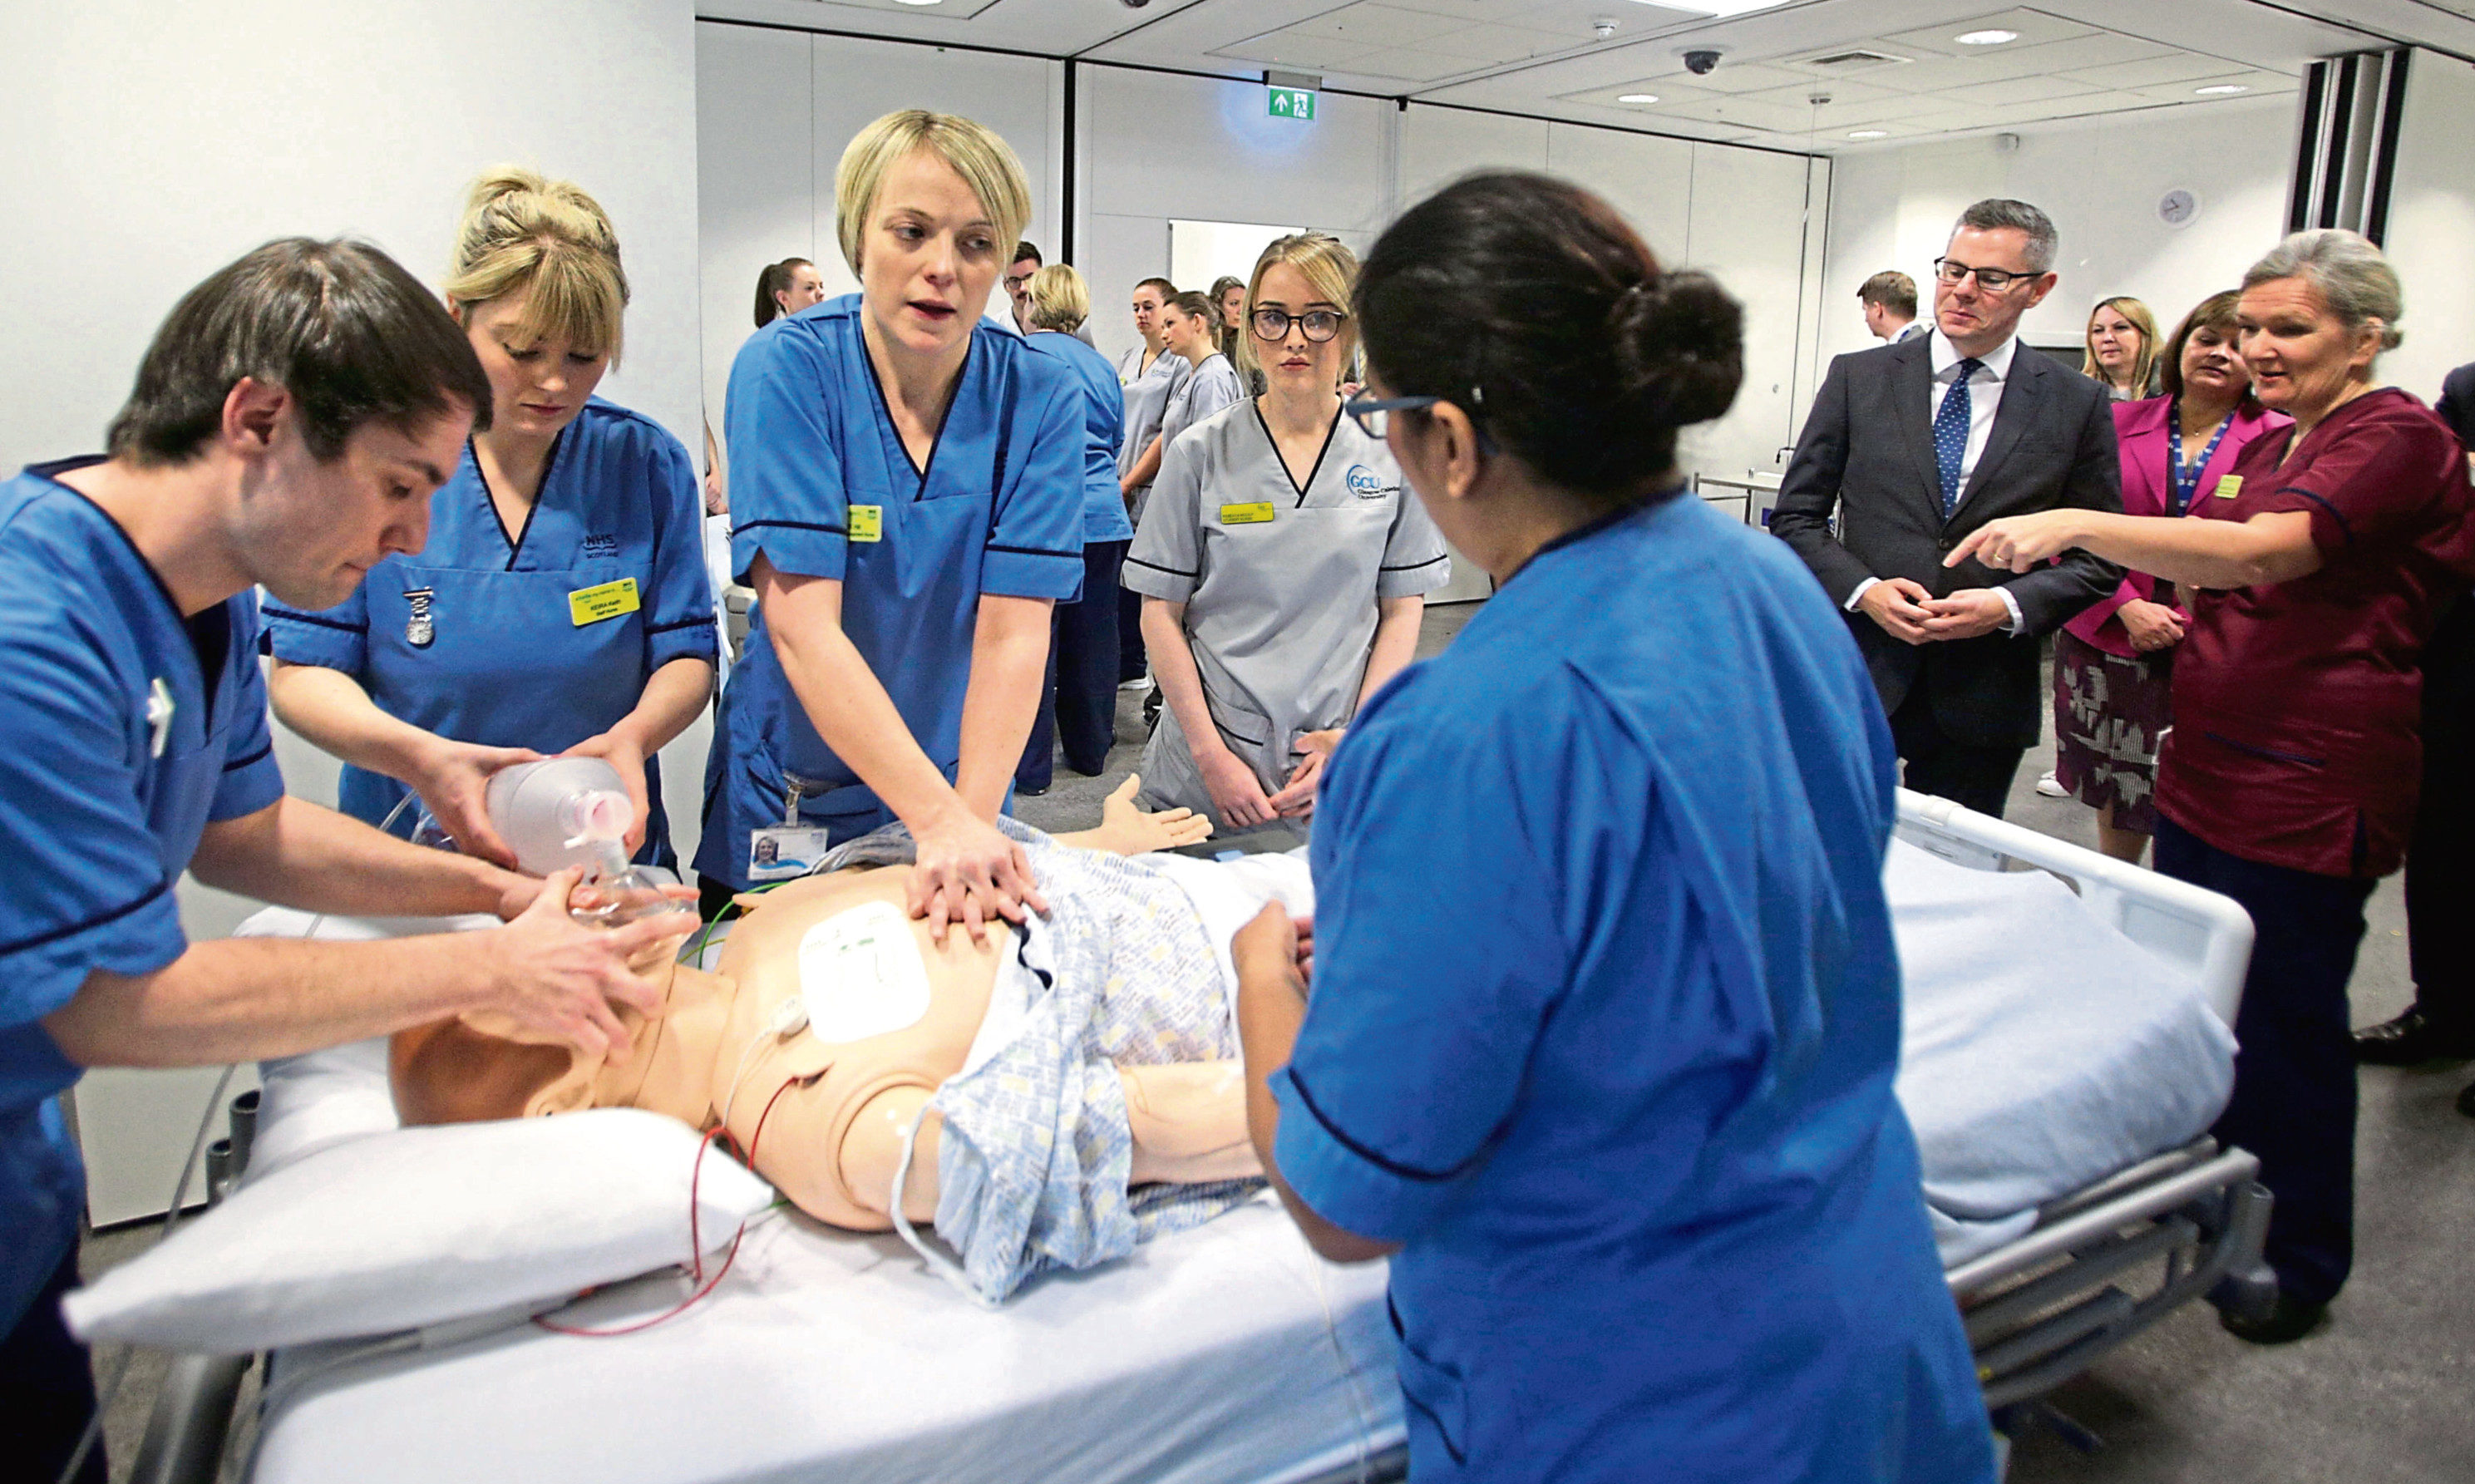 Scottish Finance Secretary Derek Mackay (second right) watches a teaching session on cardio-pulmonary resuscitation (CPR) in a simulated ward environment at the teaching and Learning Centre, Queen Elizabeth University Hospital, Glasgow.